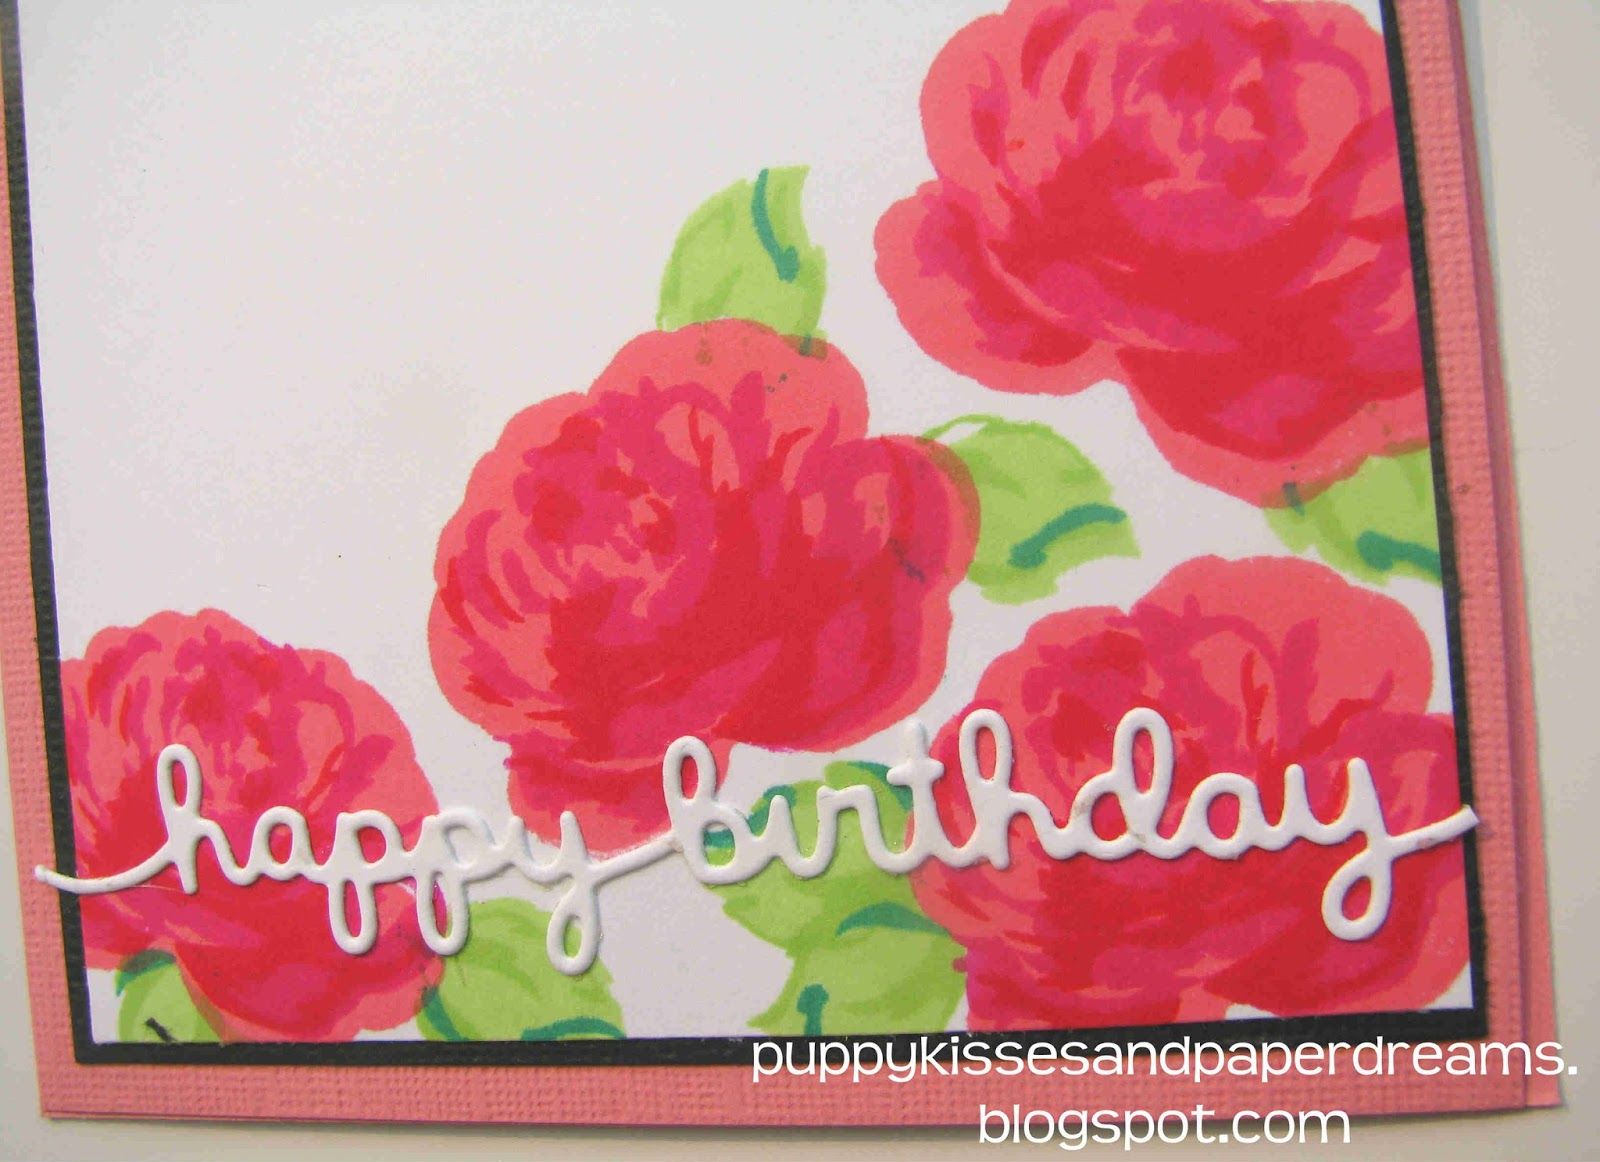 Puppy Kisses And Paper Dreams Birthday Flower Cards 08292015